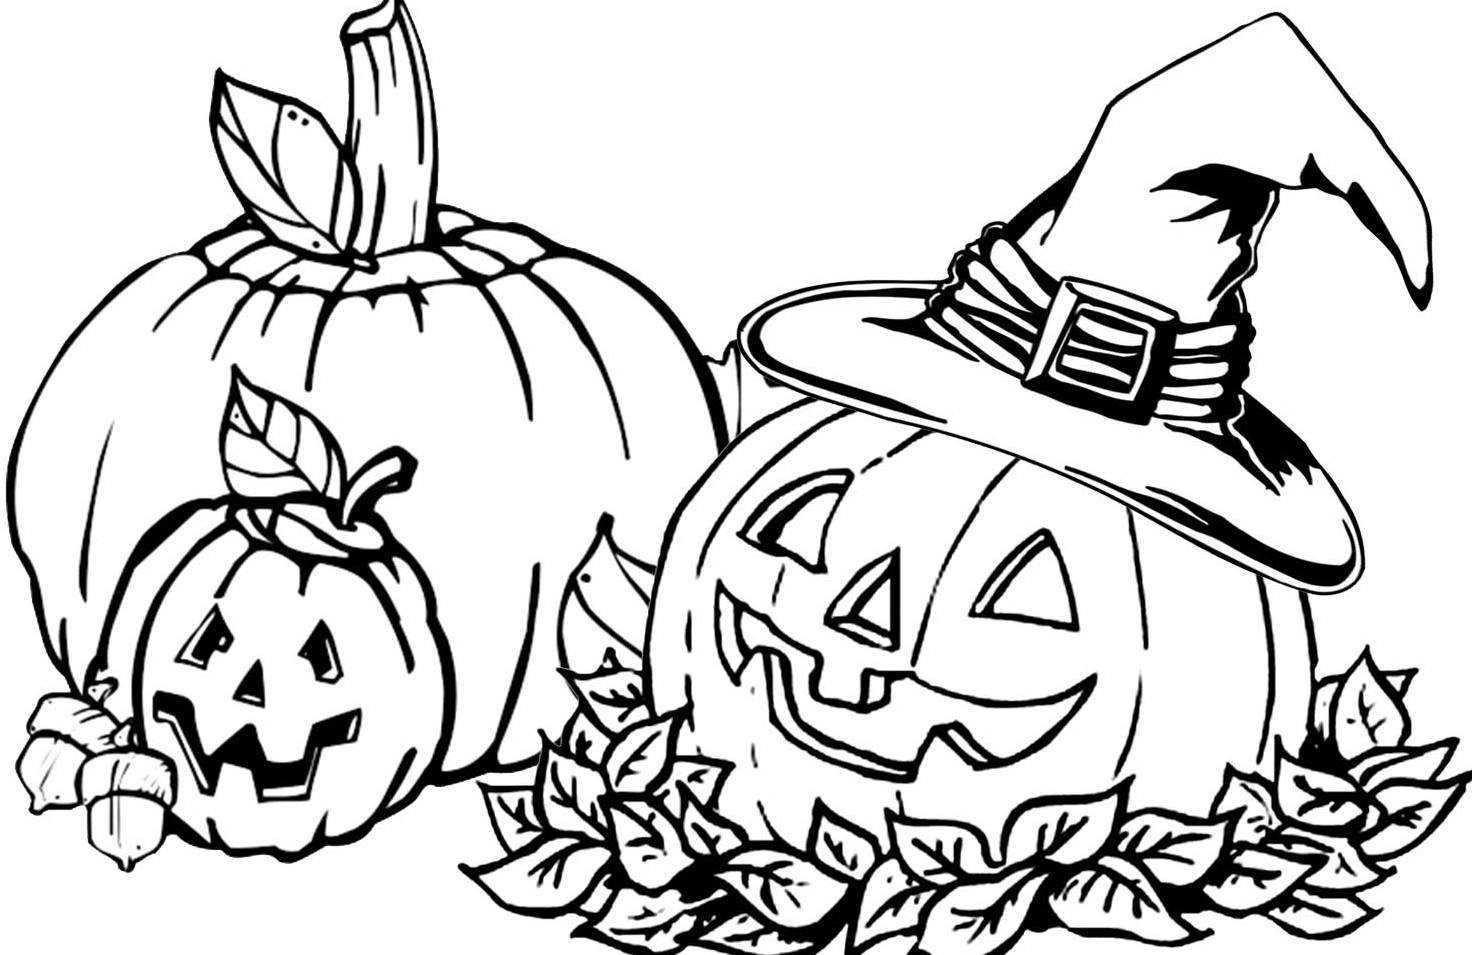 free coloring pages of pumpkins free printable pumpkin coloring pages for kids cool2bkids pages pumpkins of free coloring